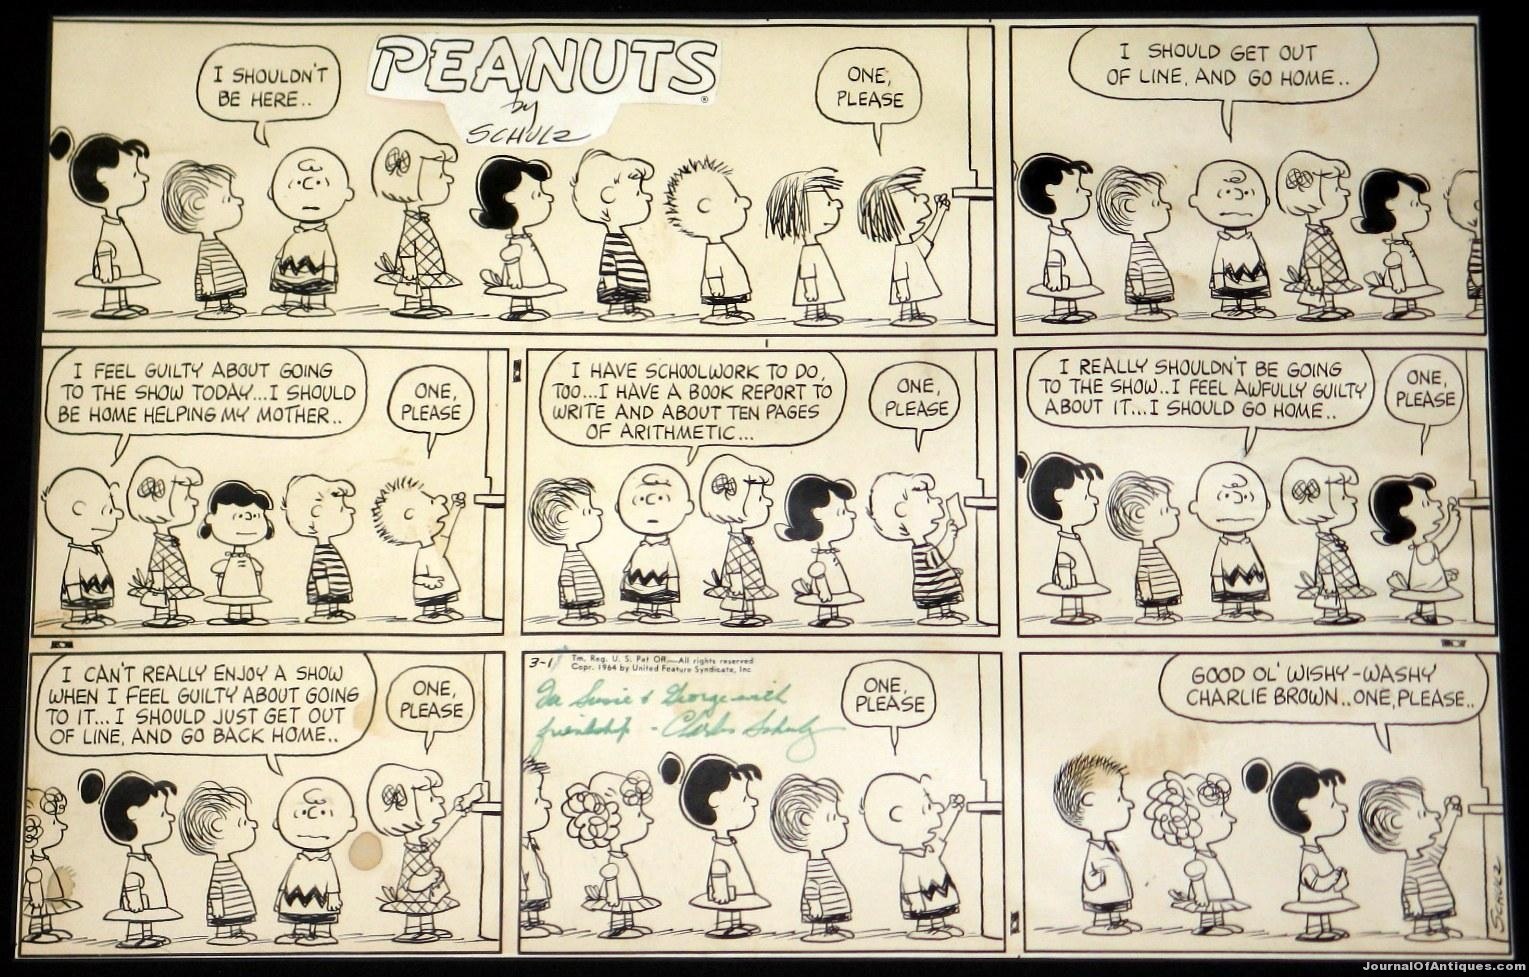 Peanuts Sunday strip, $41,400, Philip Weiss